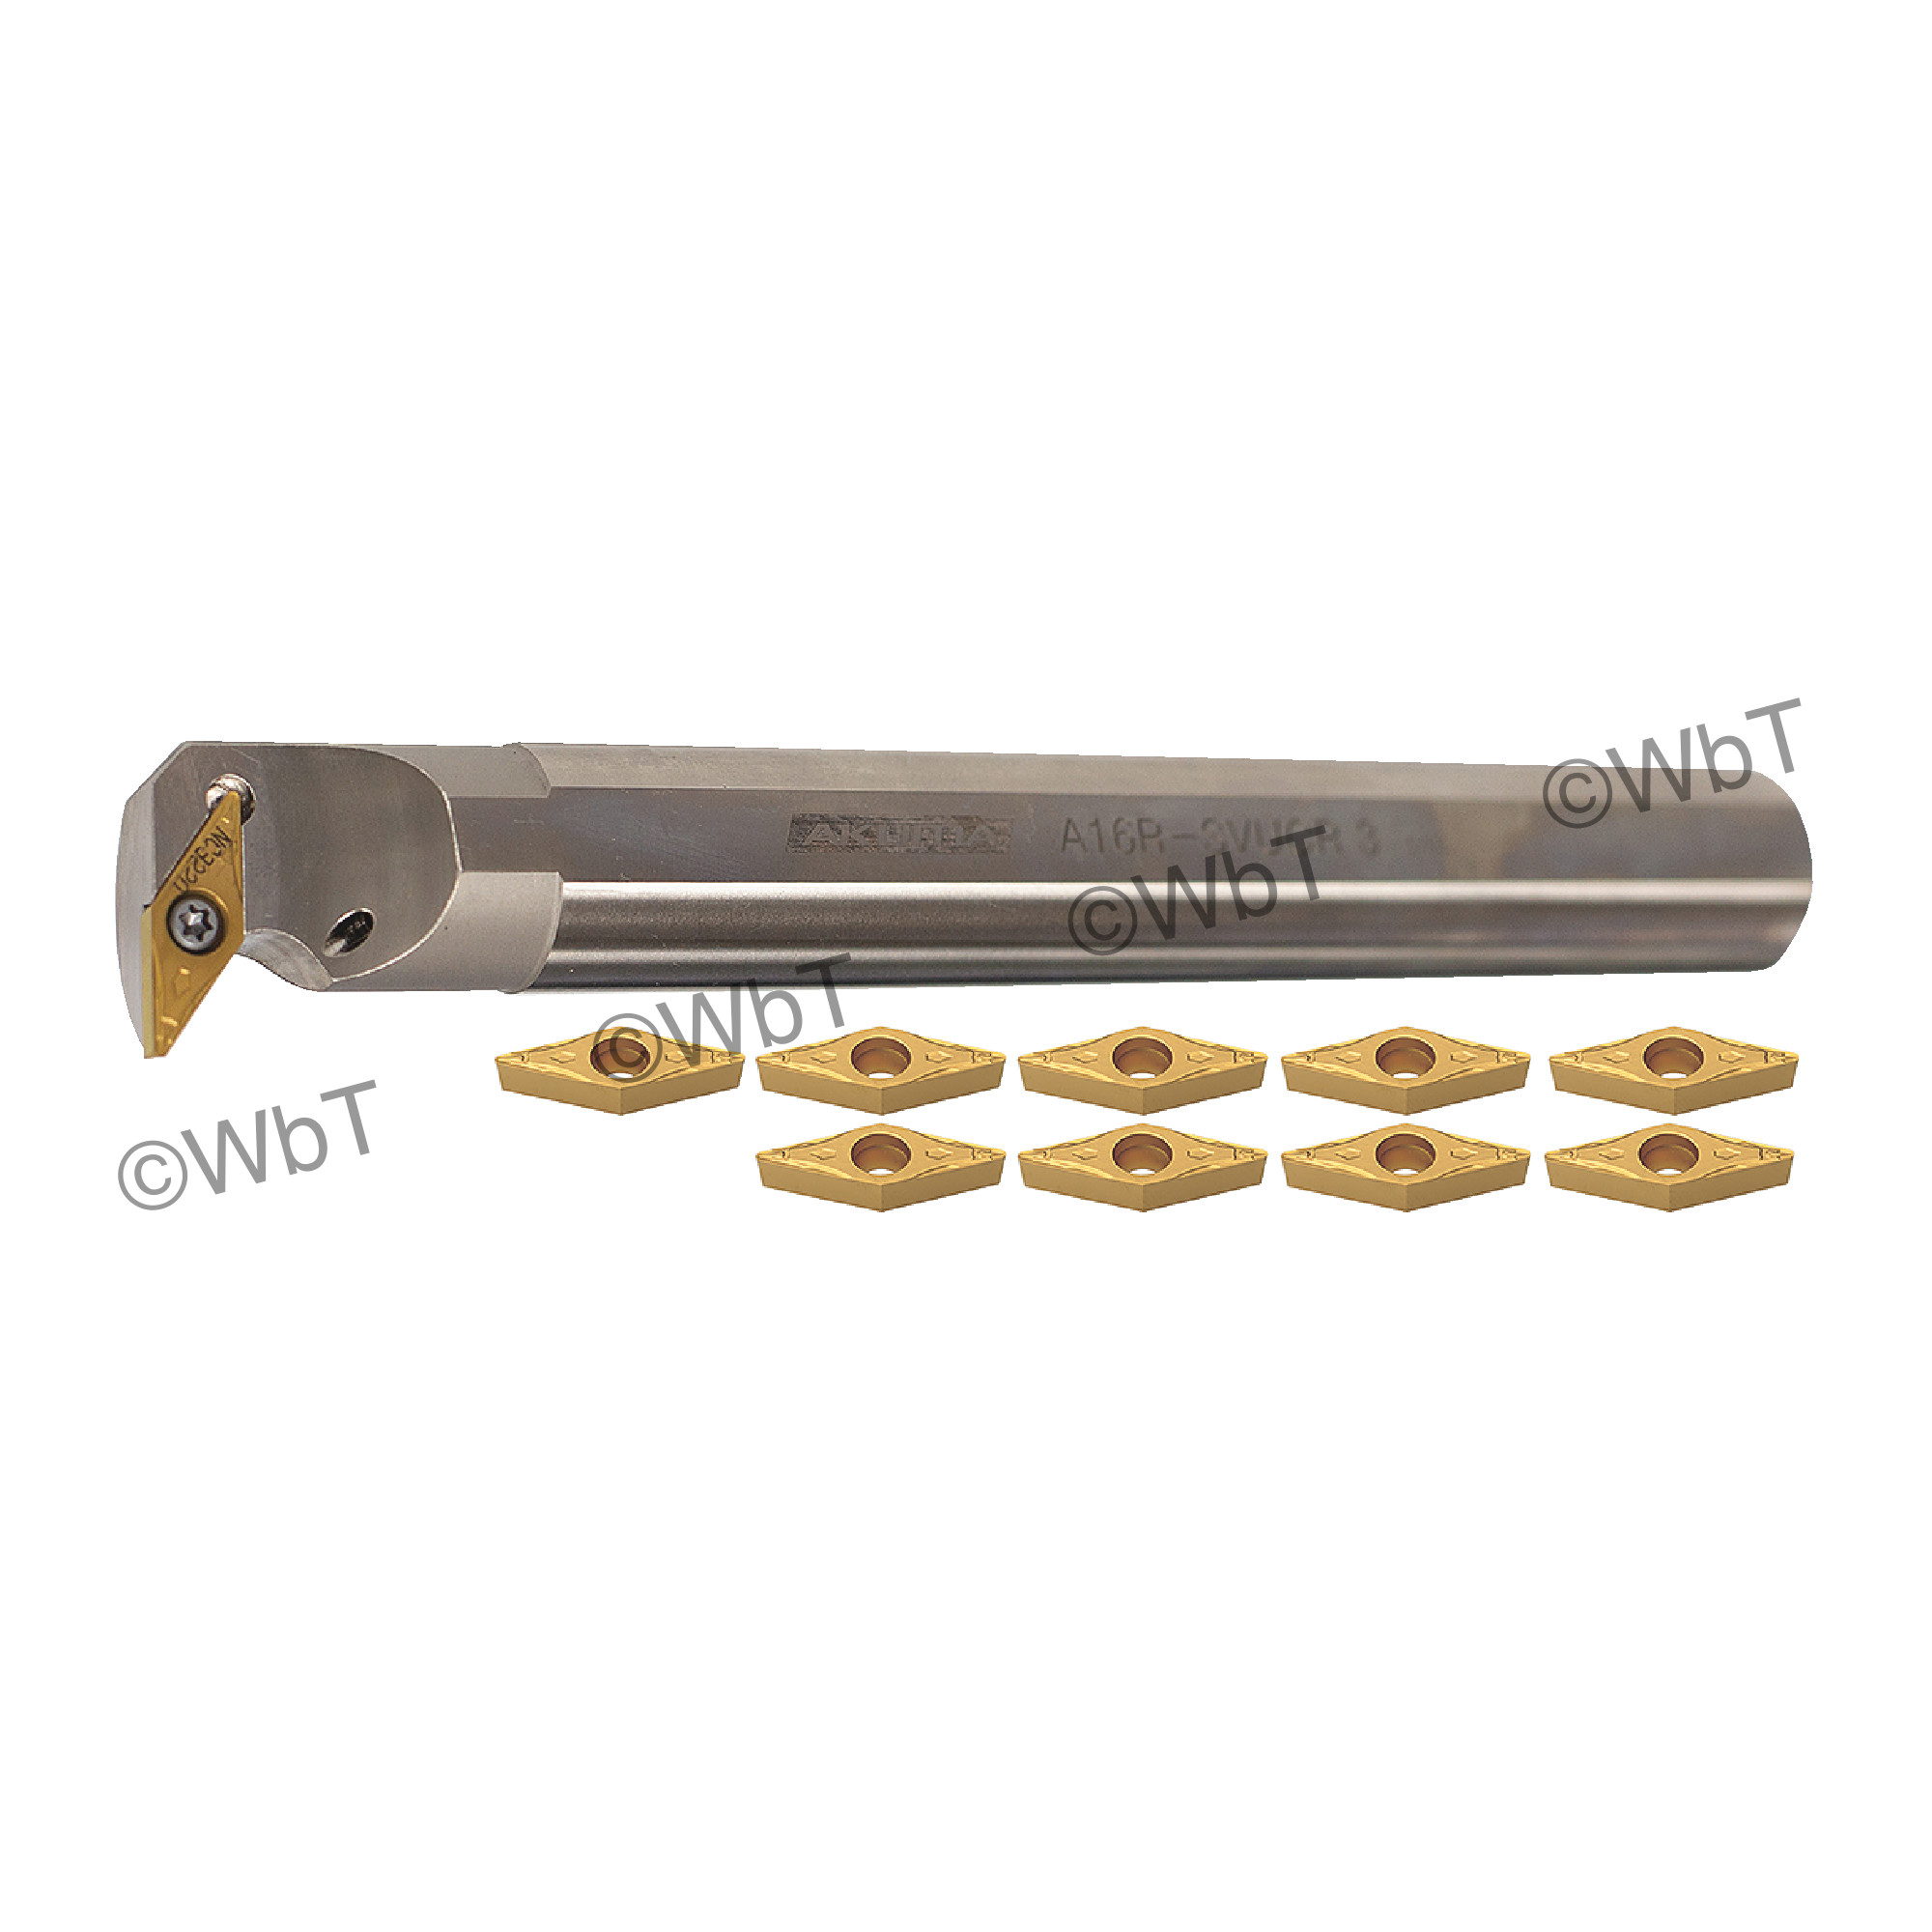 """AKUMA - 1.0"""" Boring Bar Set with (1) A16R-SVUCR-3 (1.0"""") & (10) VCMT331-FP1 CT25M Coated Inserts / Coolant Thru / Right"""